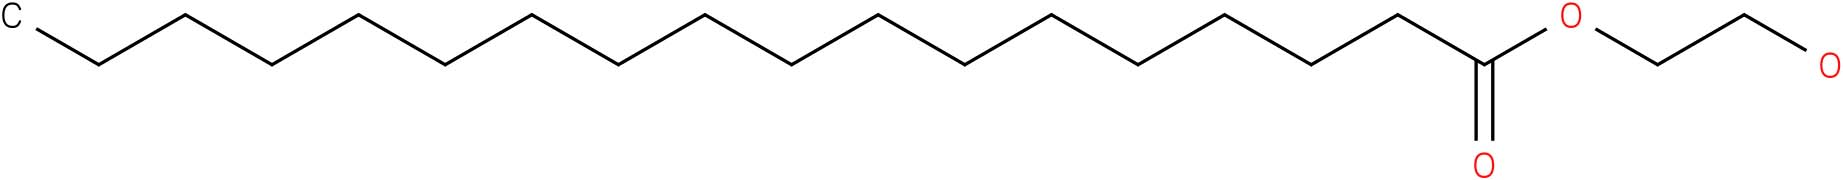 Polyoxyl 100 Stearate(Secondary Standards traceble to USP)